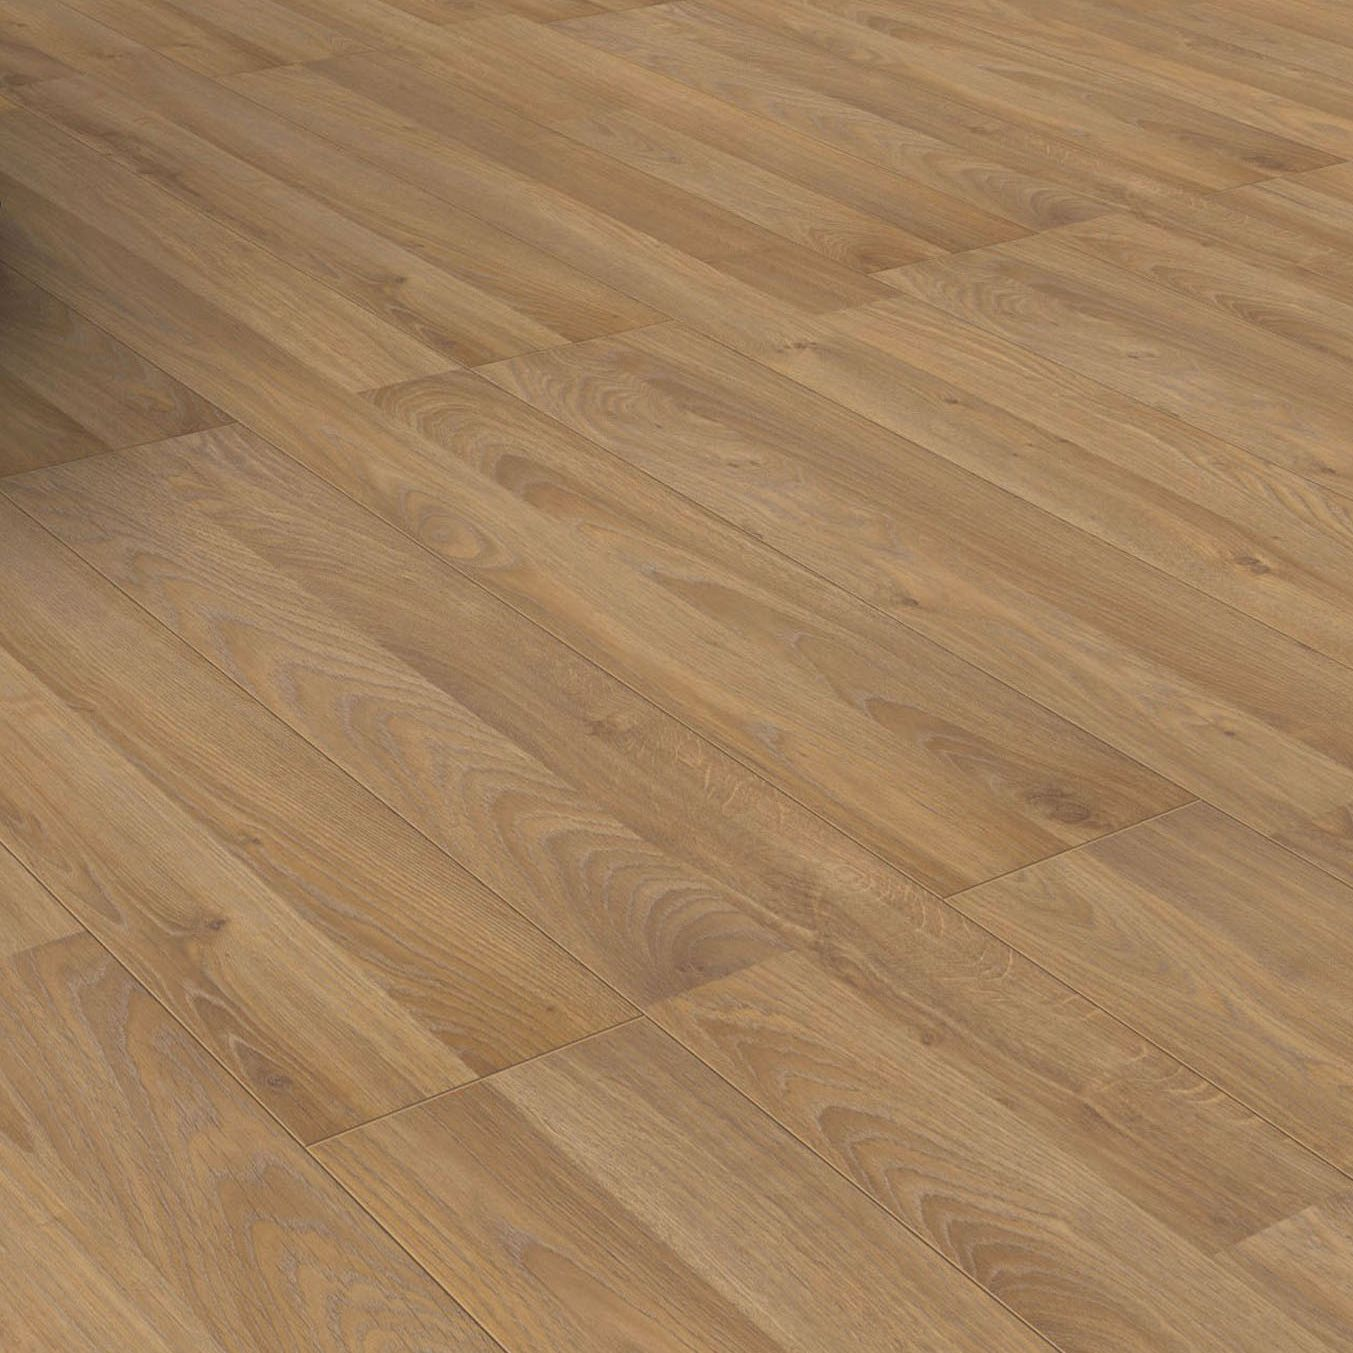 new boxed golden oak effect laminate flooring 2 m pack